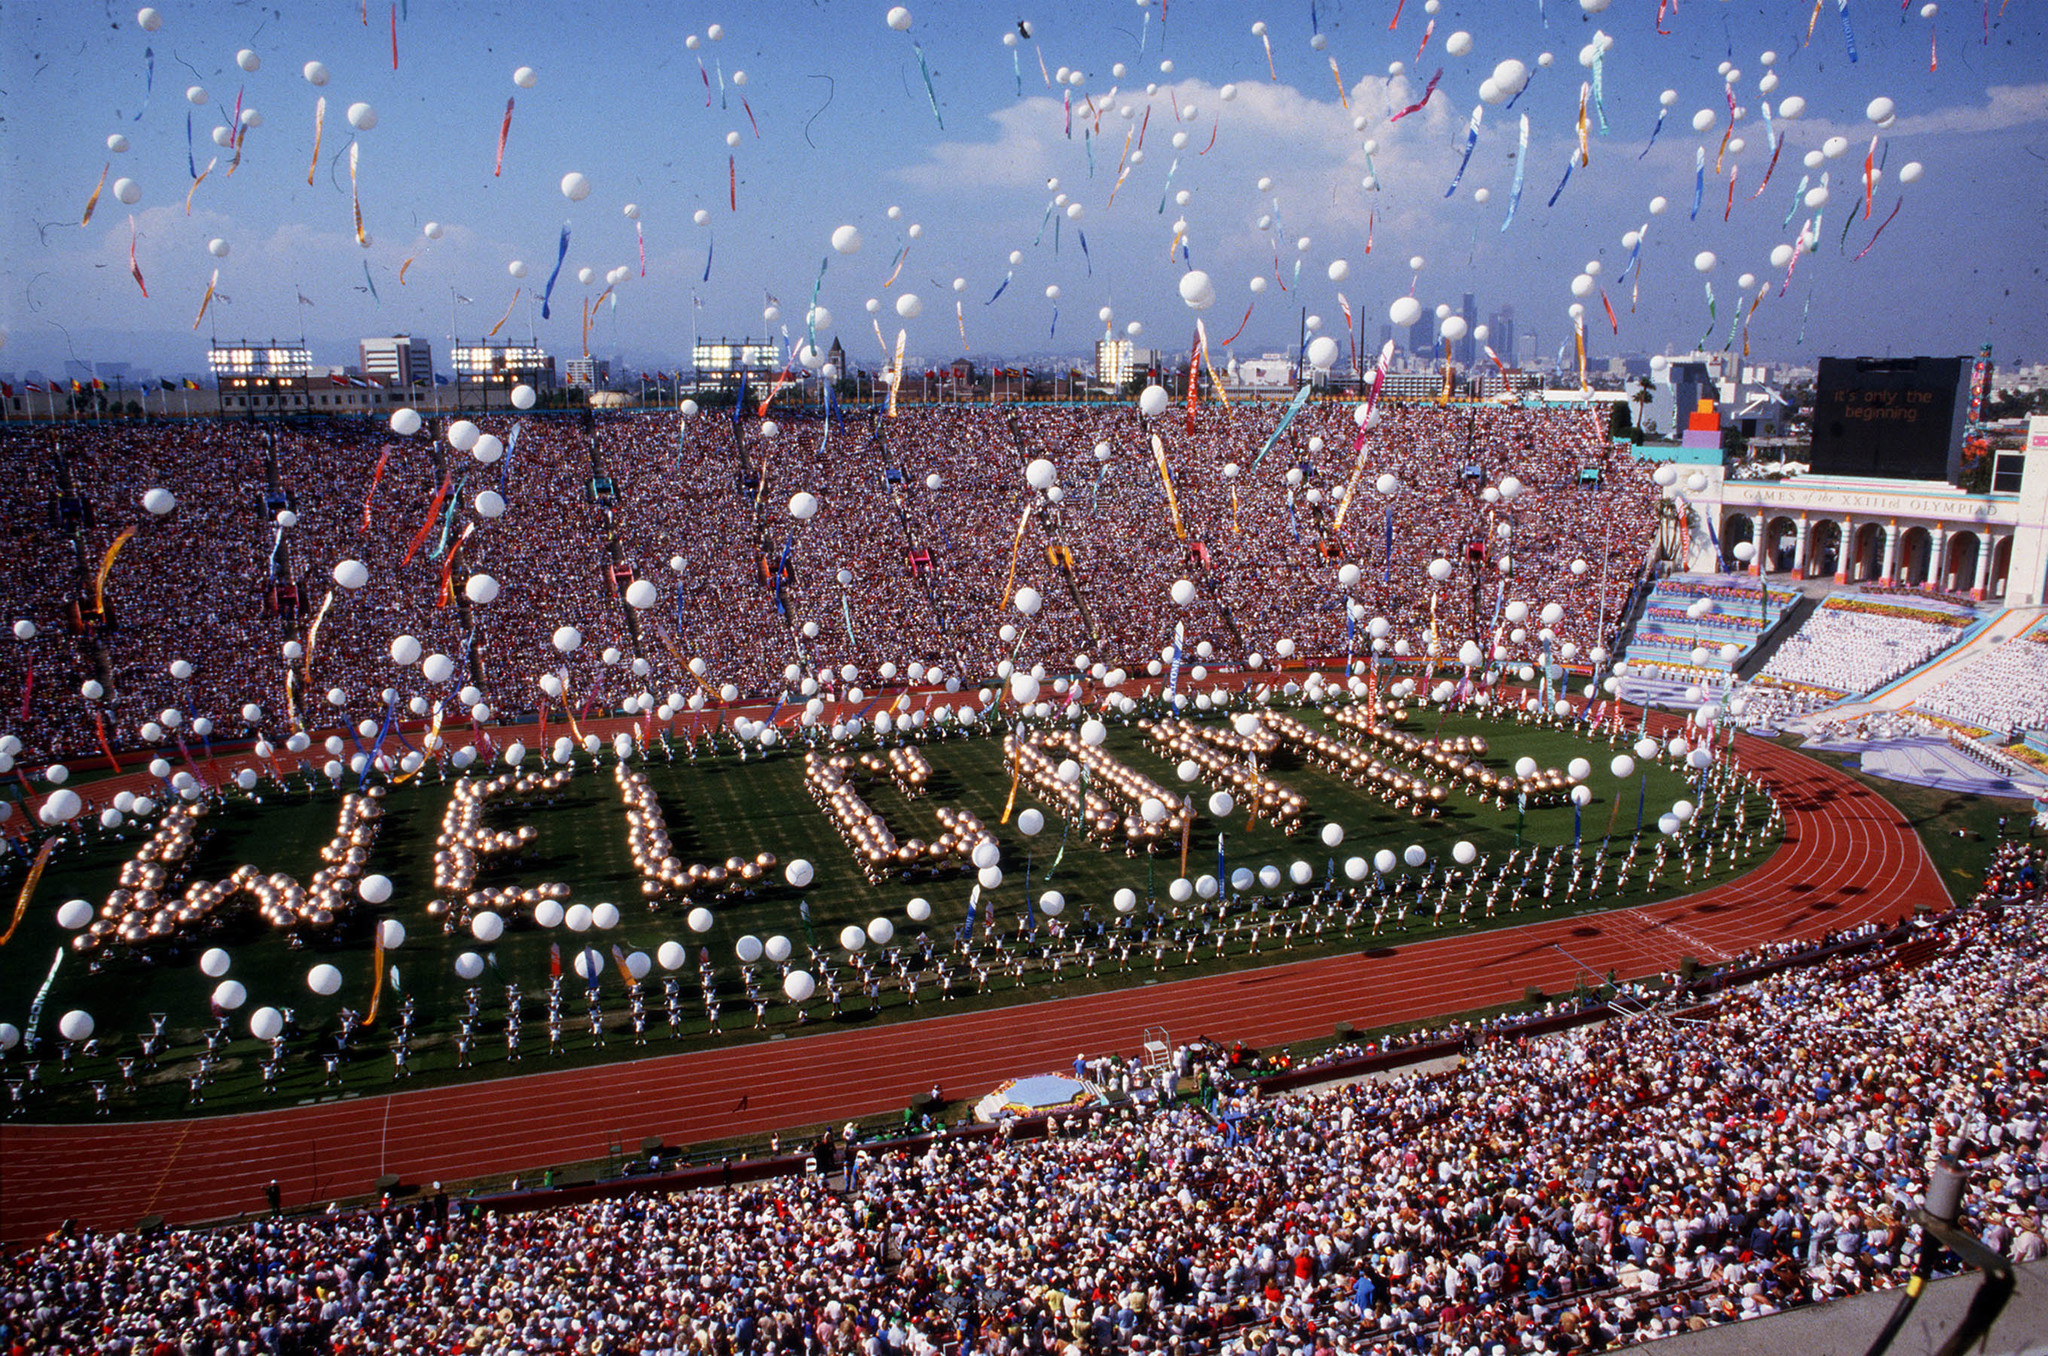 July 28, 1984: Scene at the Coliseum in Los Angeles during opening ceremonies of the Olympic Games.